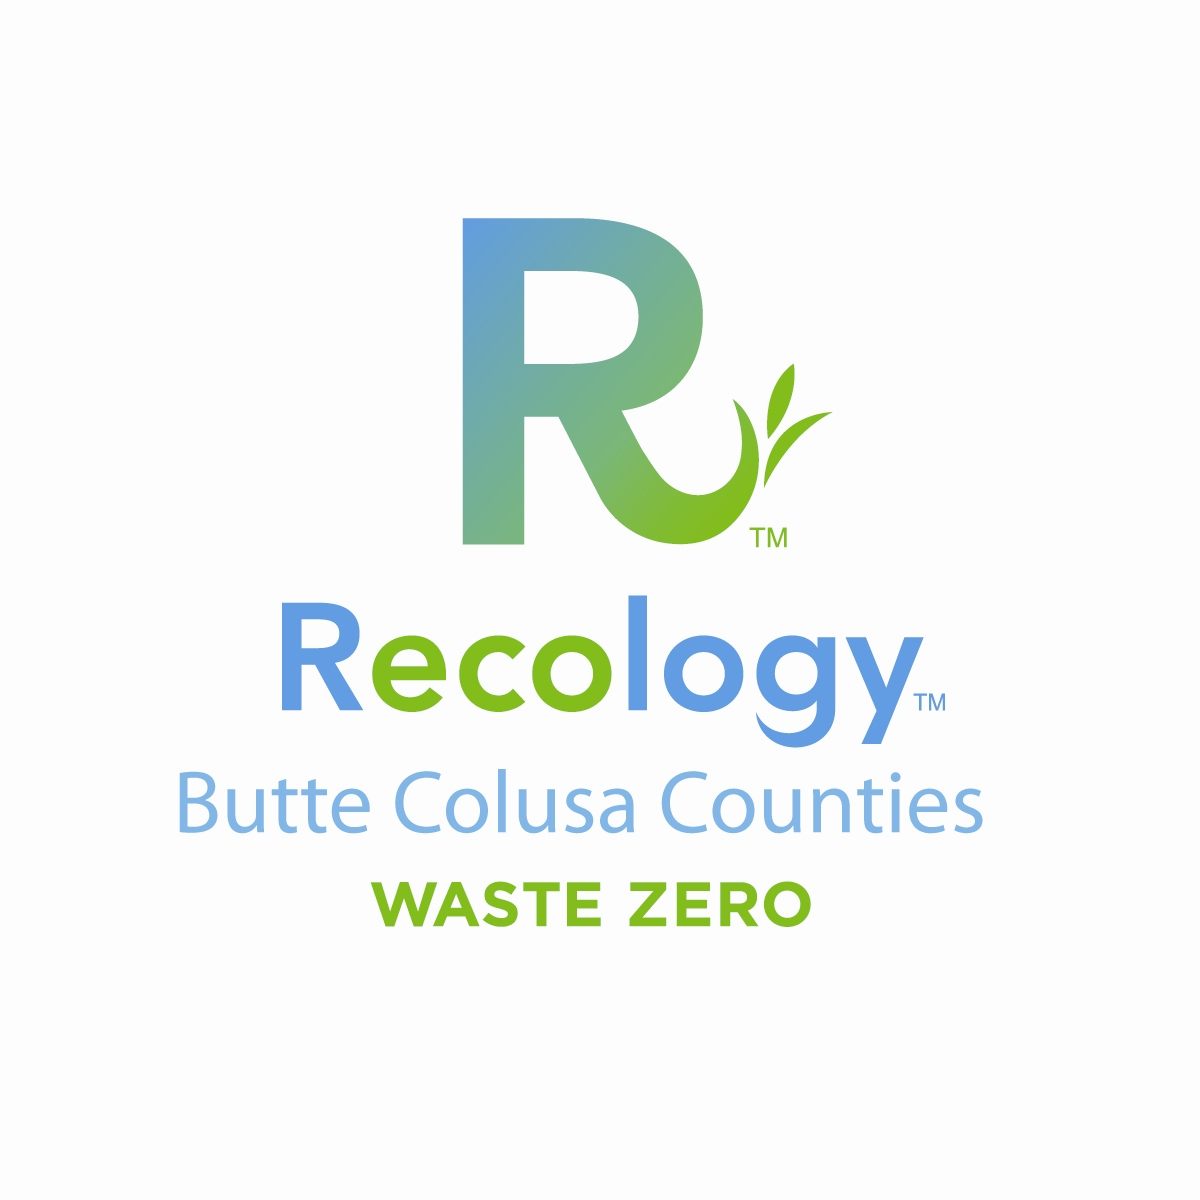 Recology Butte Colusa Counties